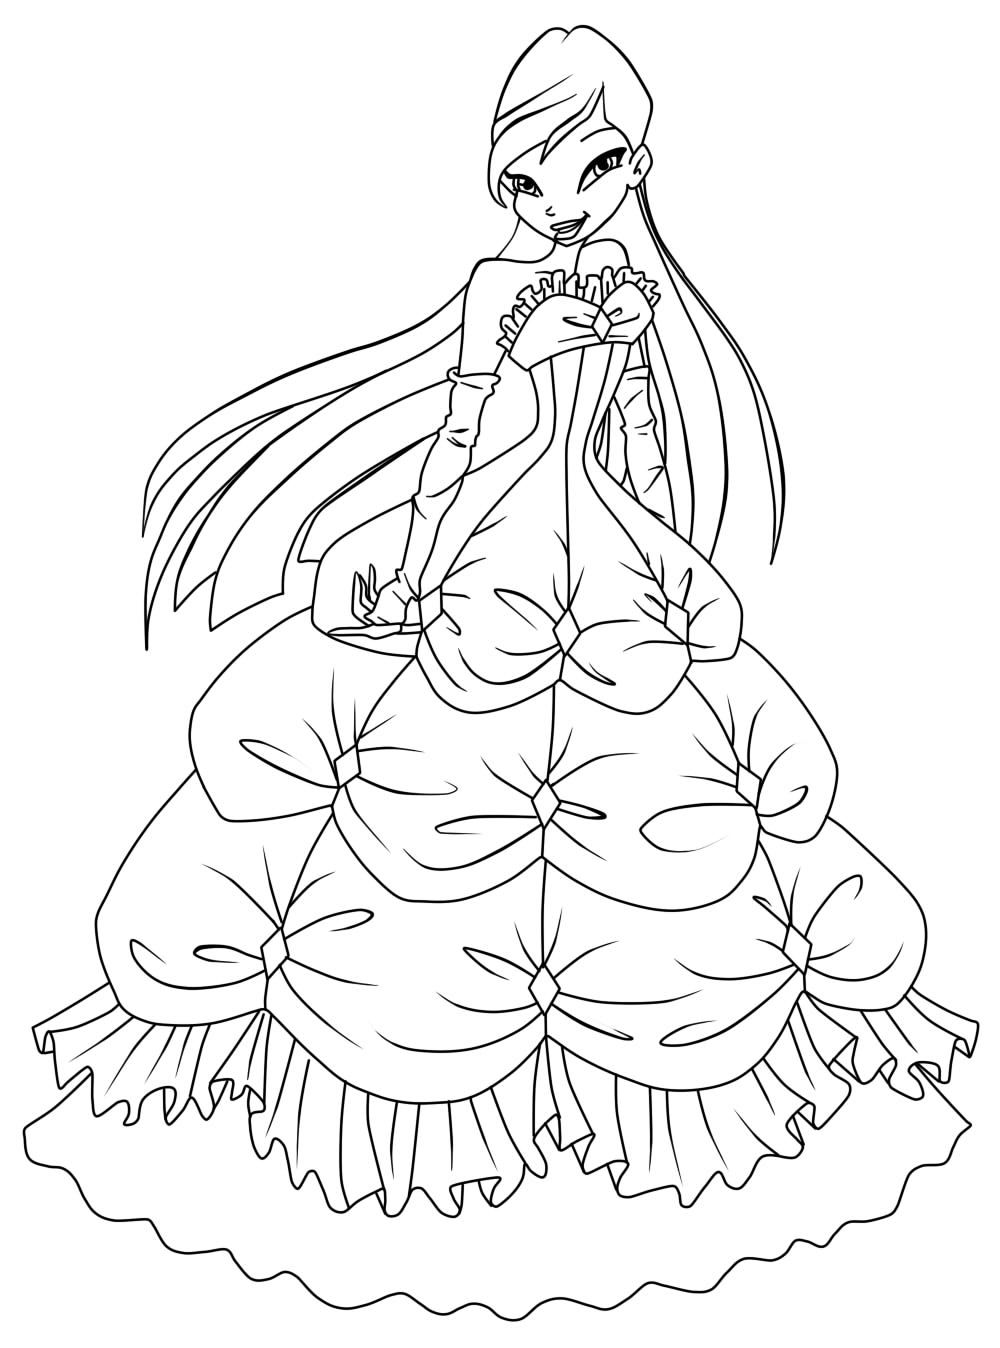 Winx Club Musa Coloring Pages | Cartoon Coloring Pages | Pinterest ...